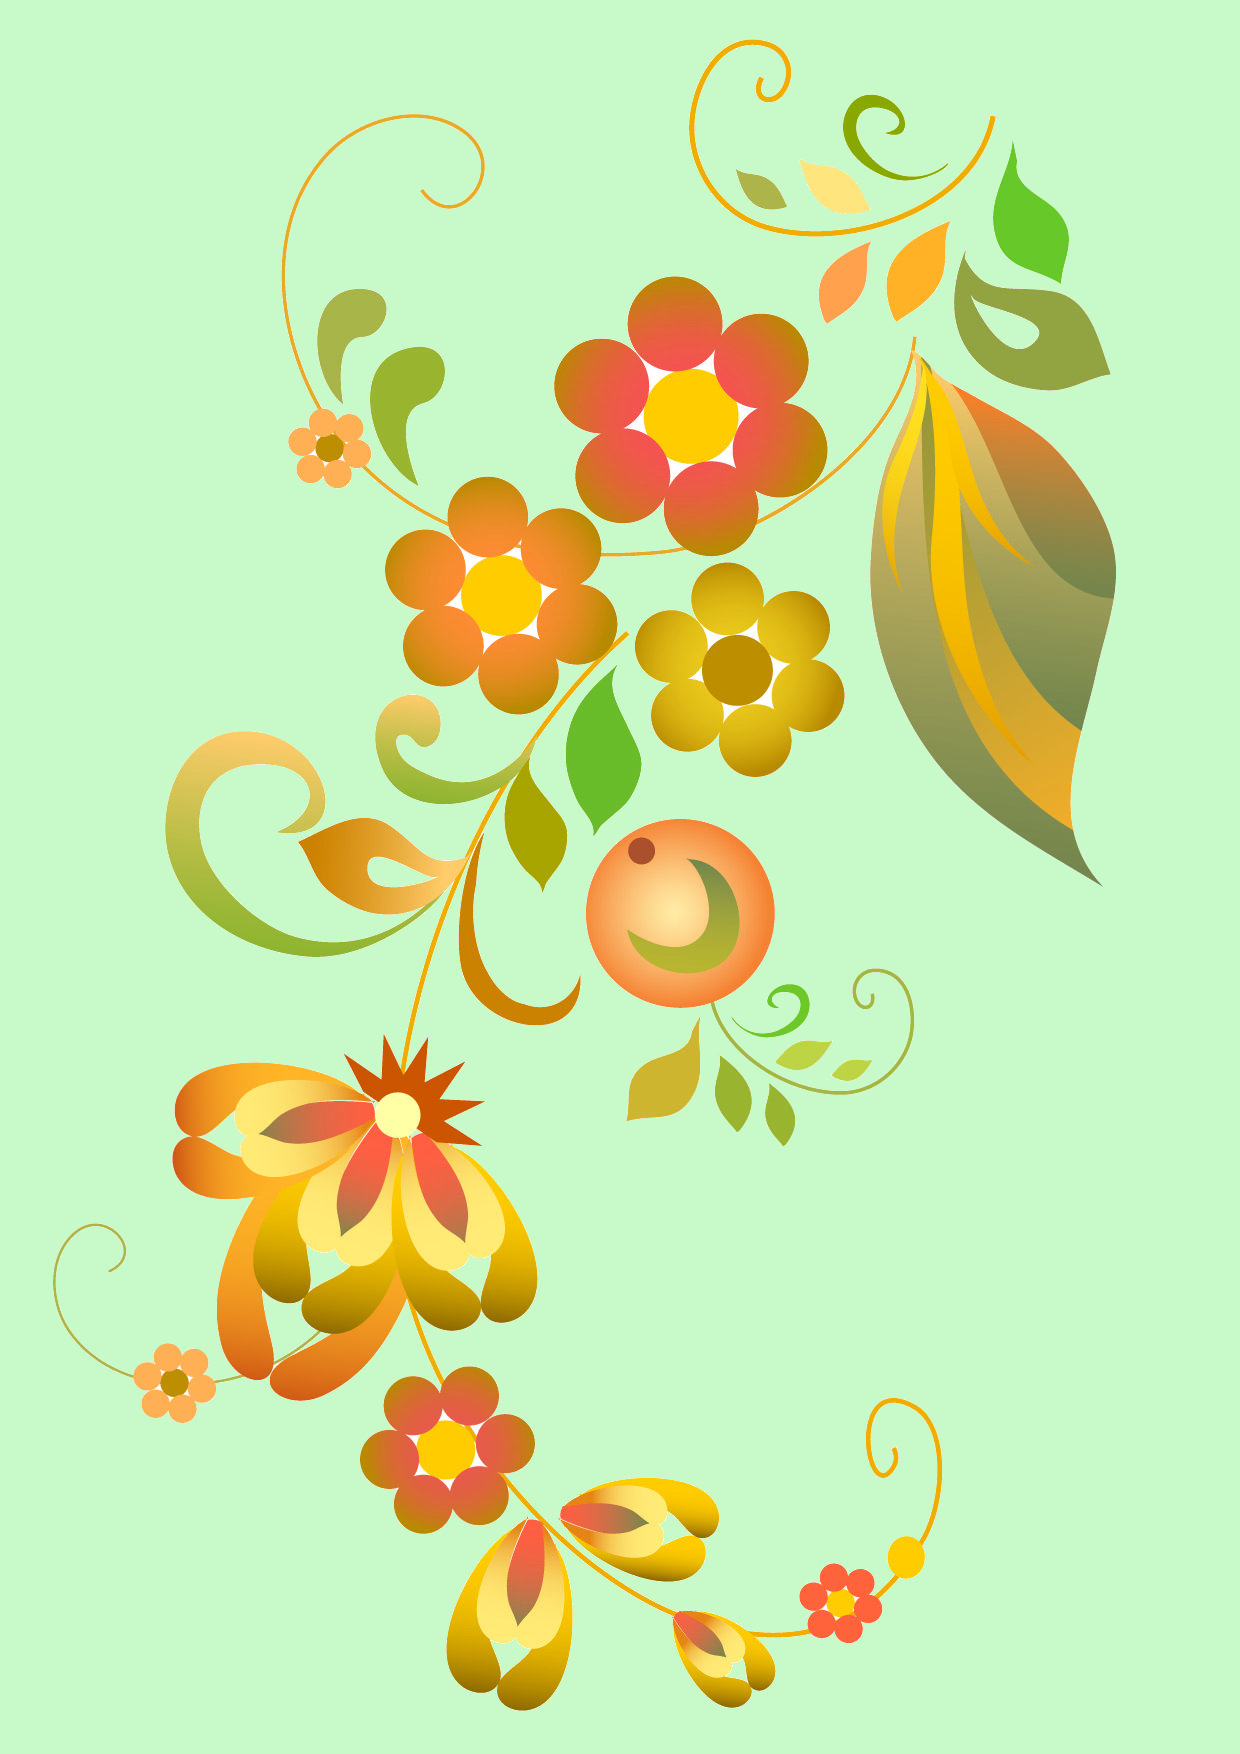 Beautiful Flower PAttern Vectors